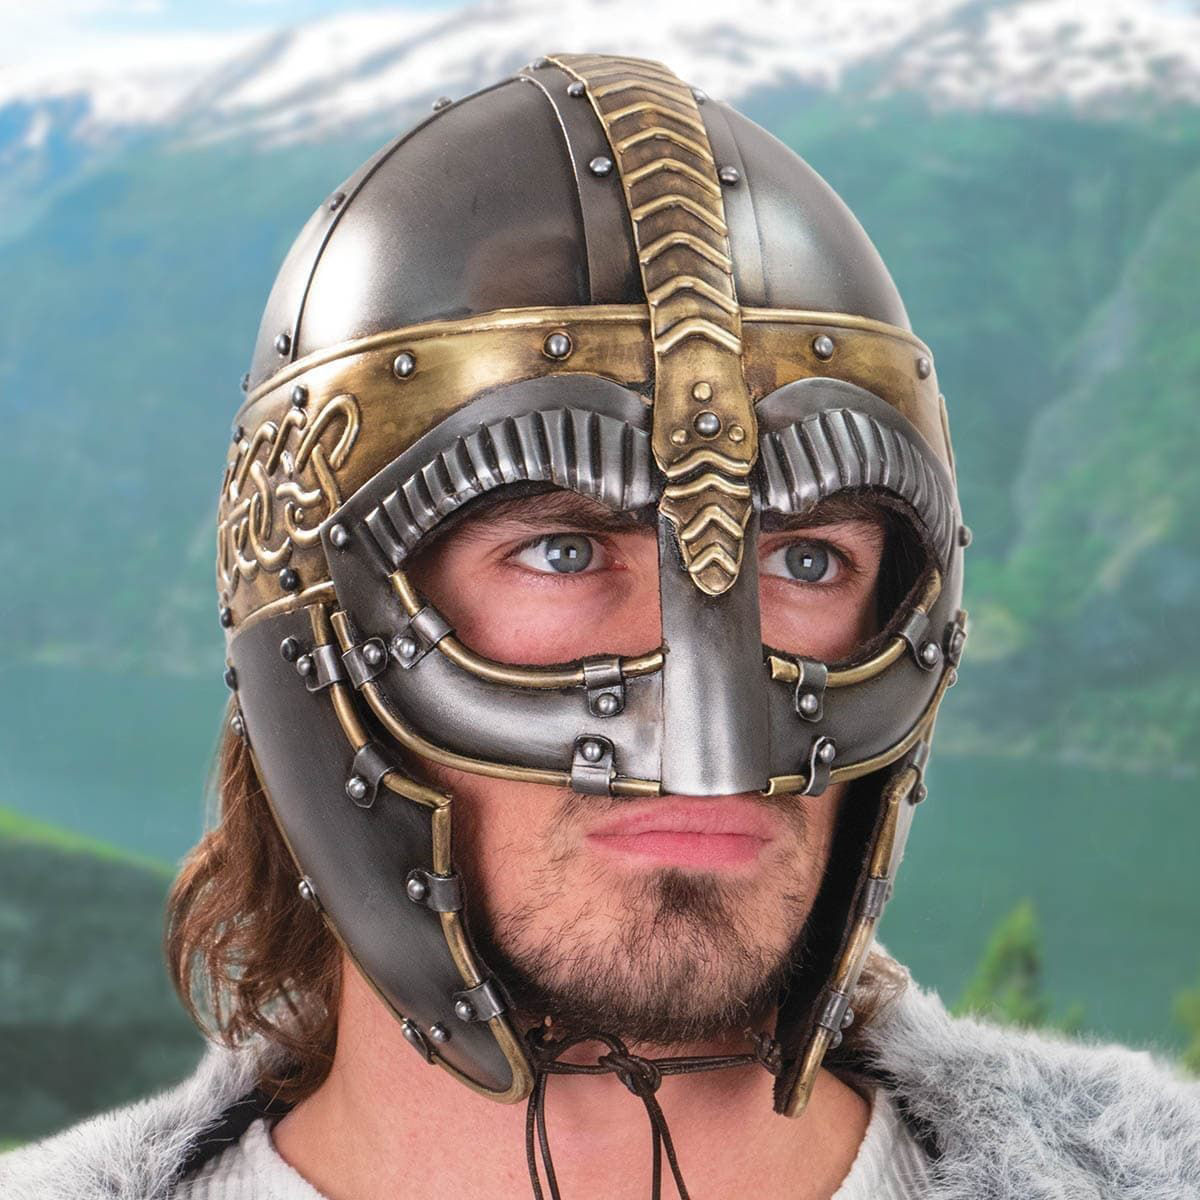 Norseman helmet by Windlass Steelcrafts is the Gjermundbu type and made of 18 gauge steel and brass. Features opulent details.